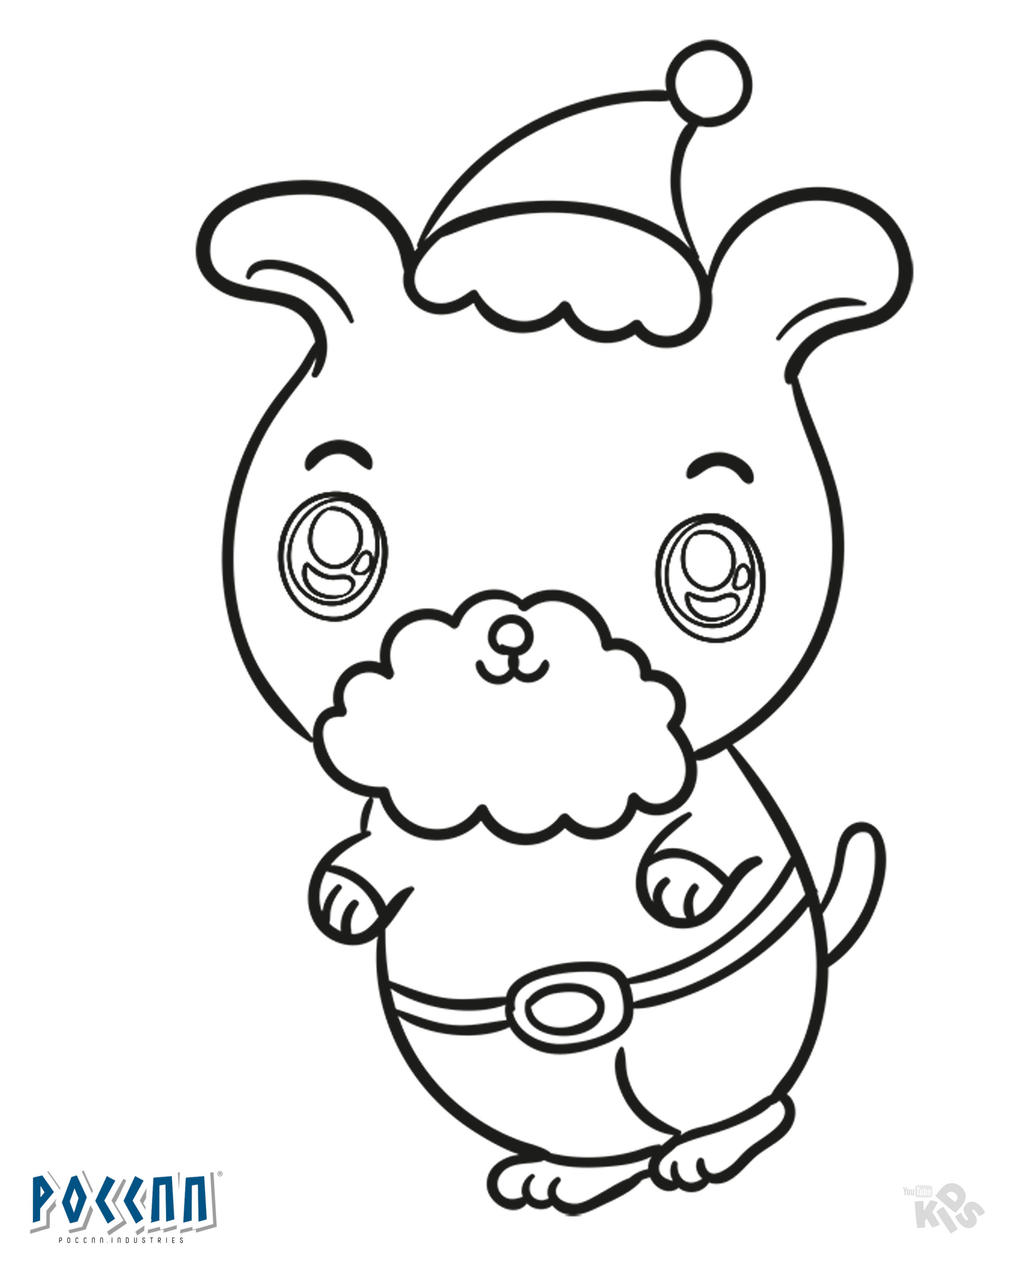 Dog Santa Claus Small to color (Lineart) by PoccnnIndustries on ...